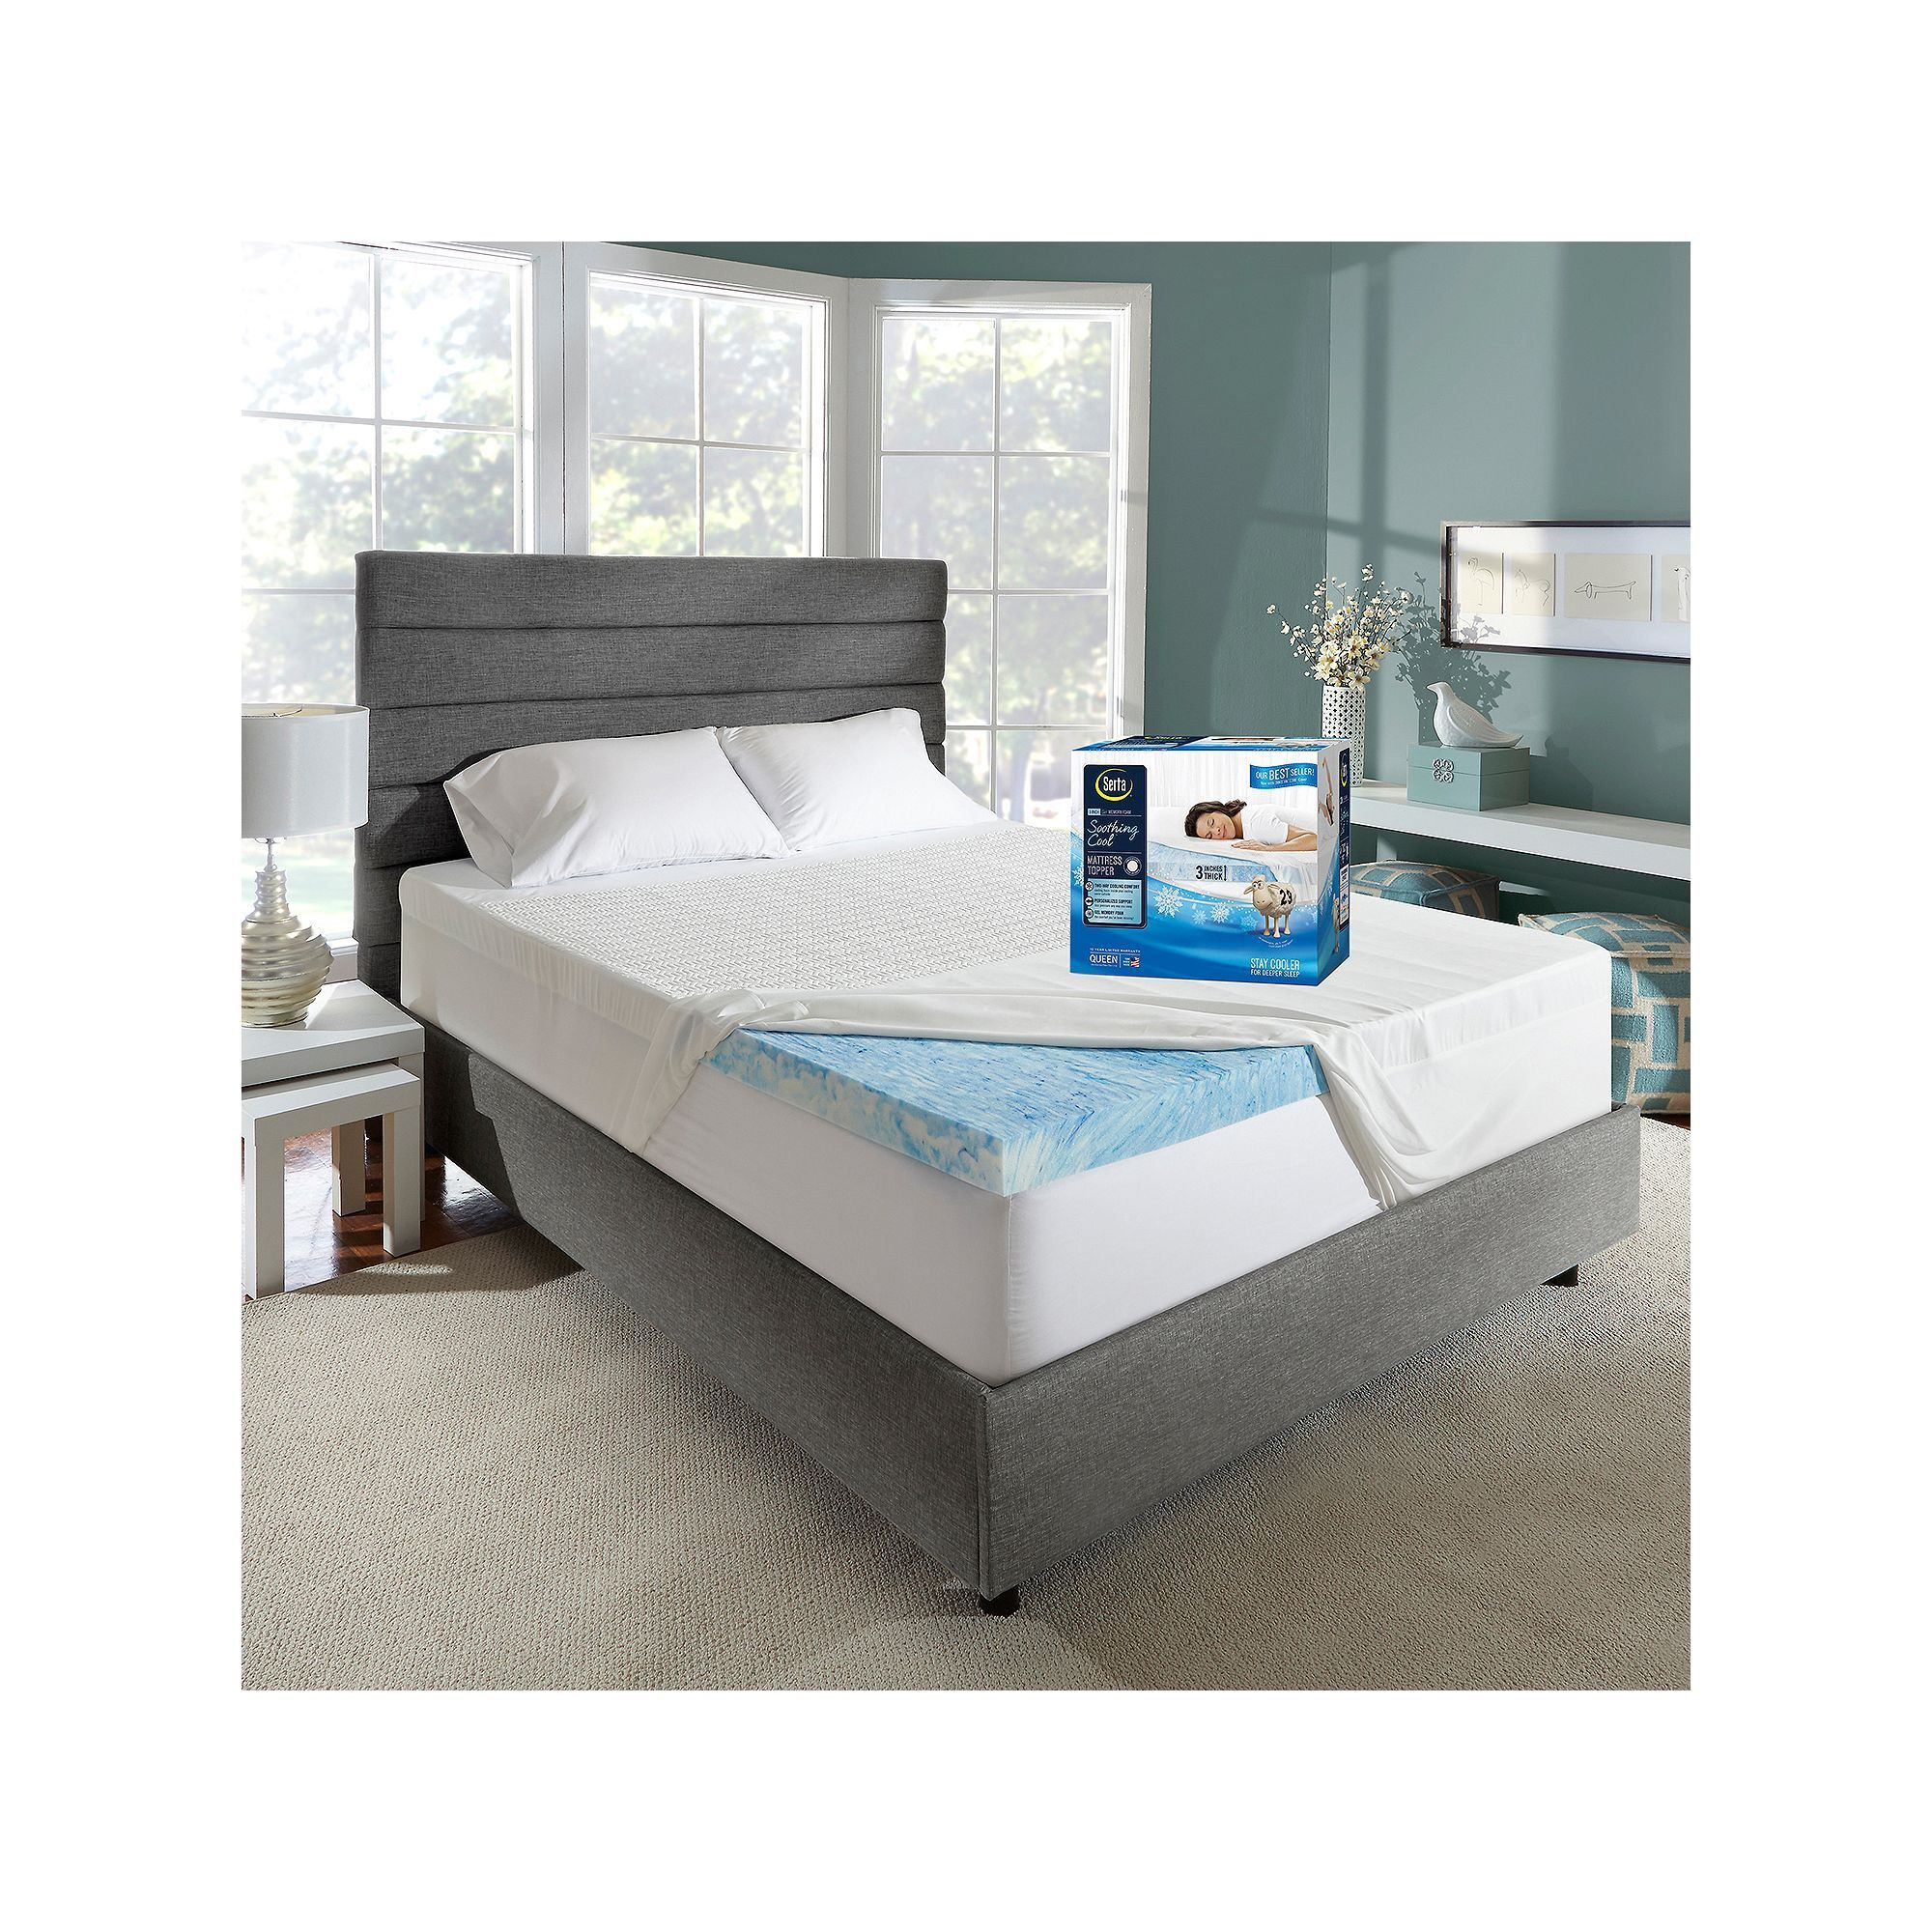 Serta Soothingcool 3 Inch Gel Memory Foam Mattress Topper With